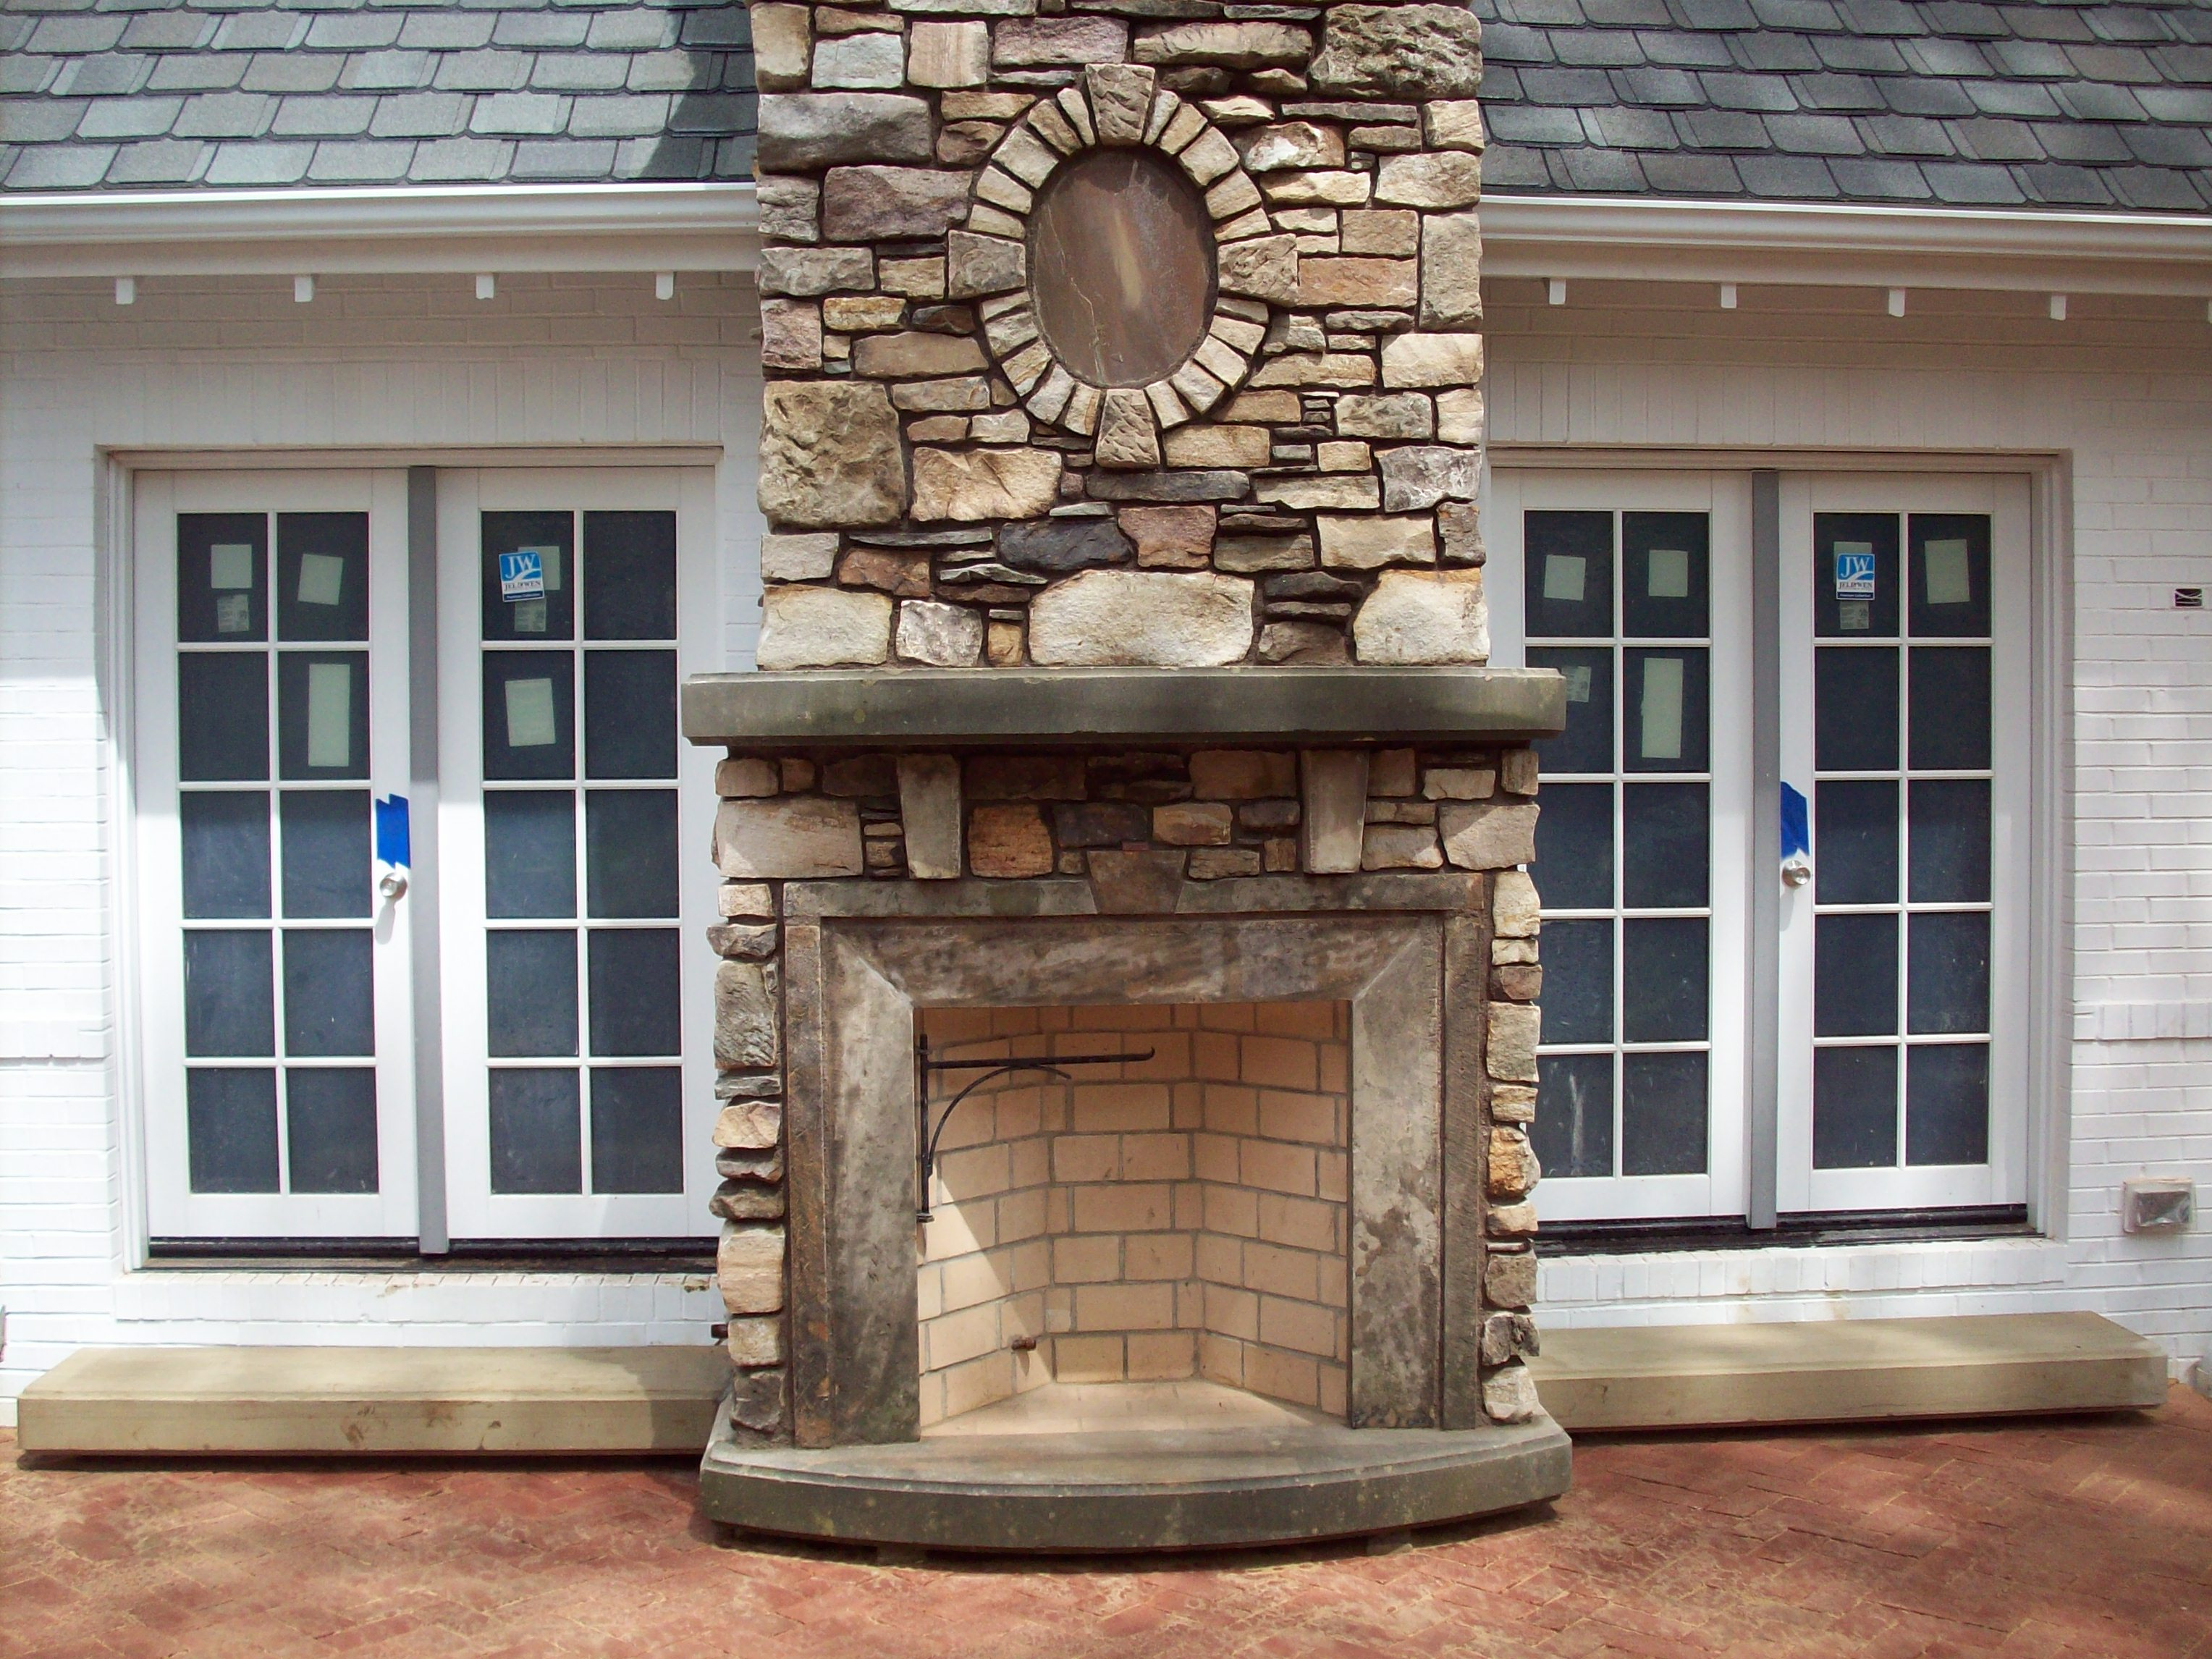 Outdoor Rumford fireplace with natural stone mantel kit matched with brown floor for heat warming patio ideas